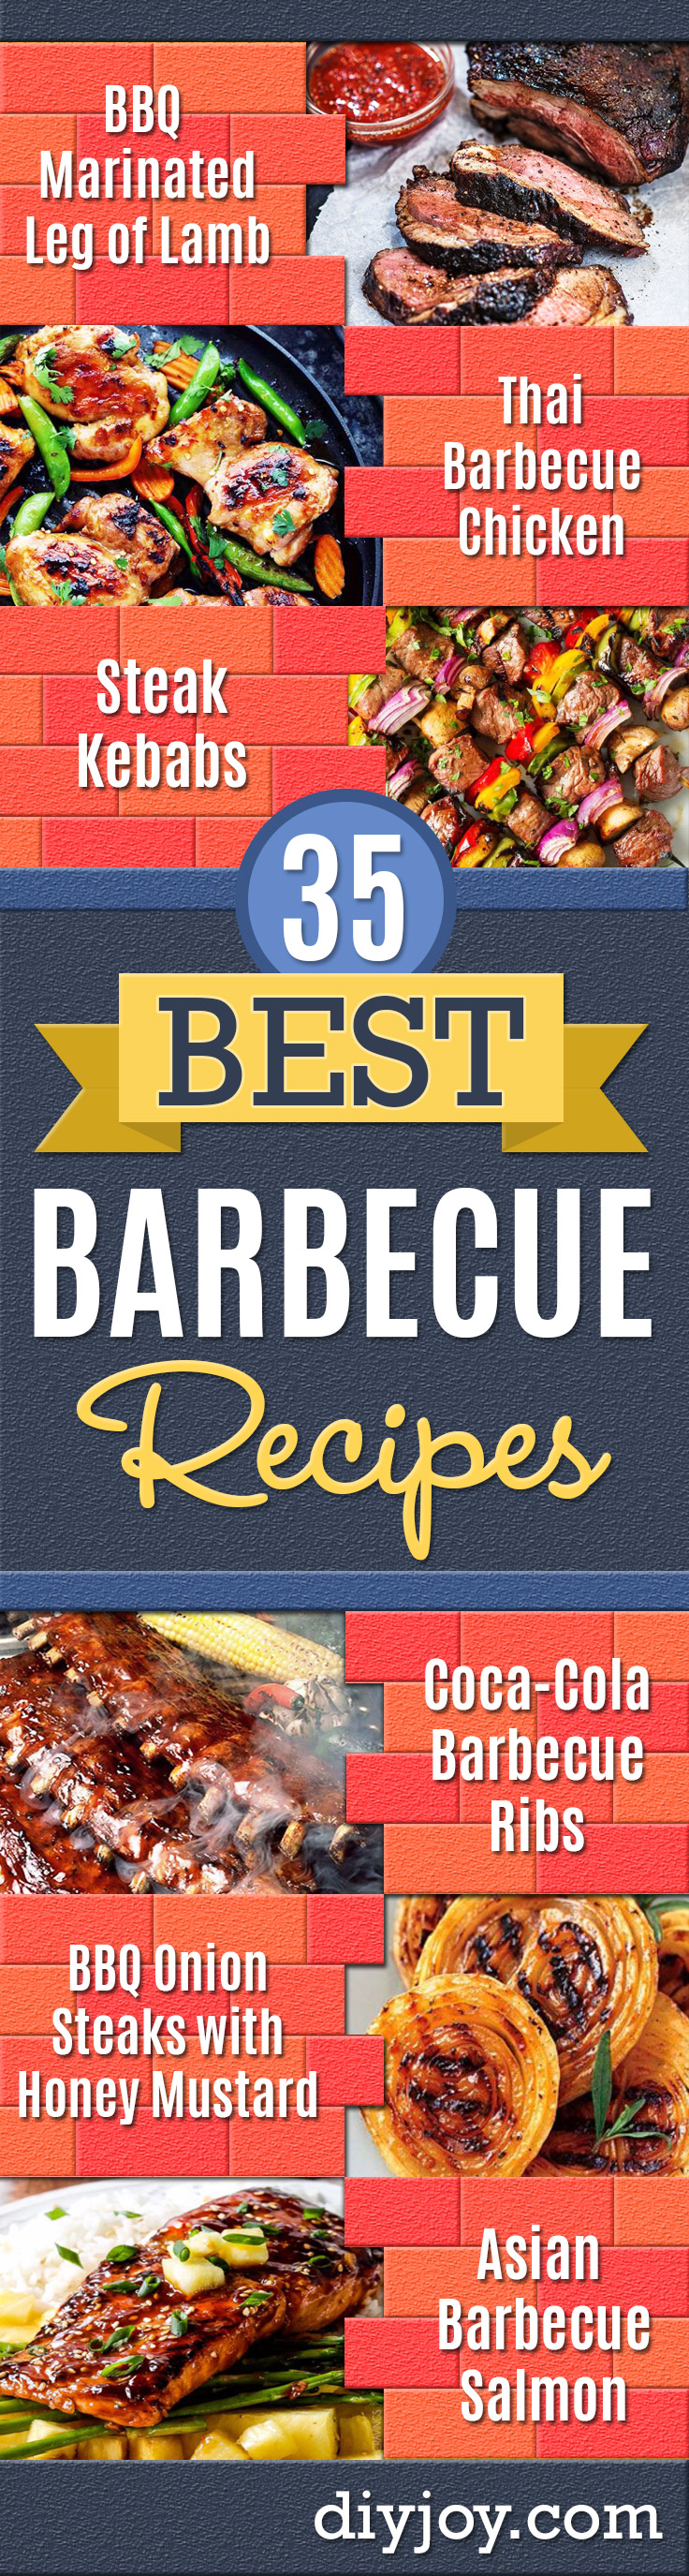 Best Barbecue Recipes - Easy BBQ Recipe Ideas for Lunch, Dinner and Quick Party Appetizers - Grilled and Smoked Foods, Chicken, Beef and Meat, Fish and Vegetable Ideas for Grilling - Sauces and Rubs, Seasonings and Favorite Bar BBQ Tips http://diyjoy.com/best-bbq-recipes